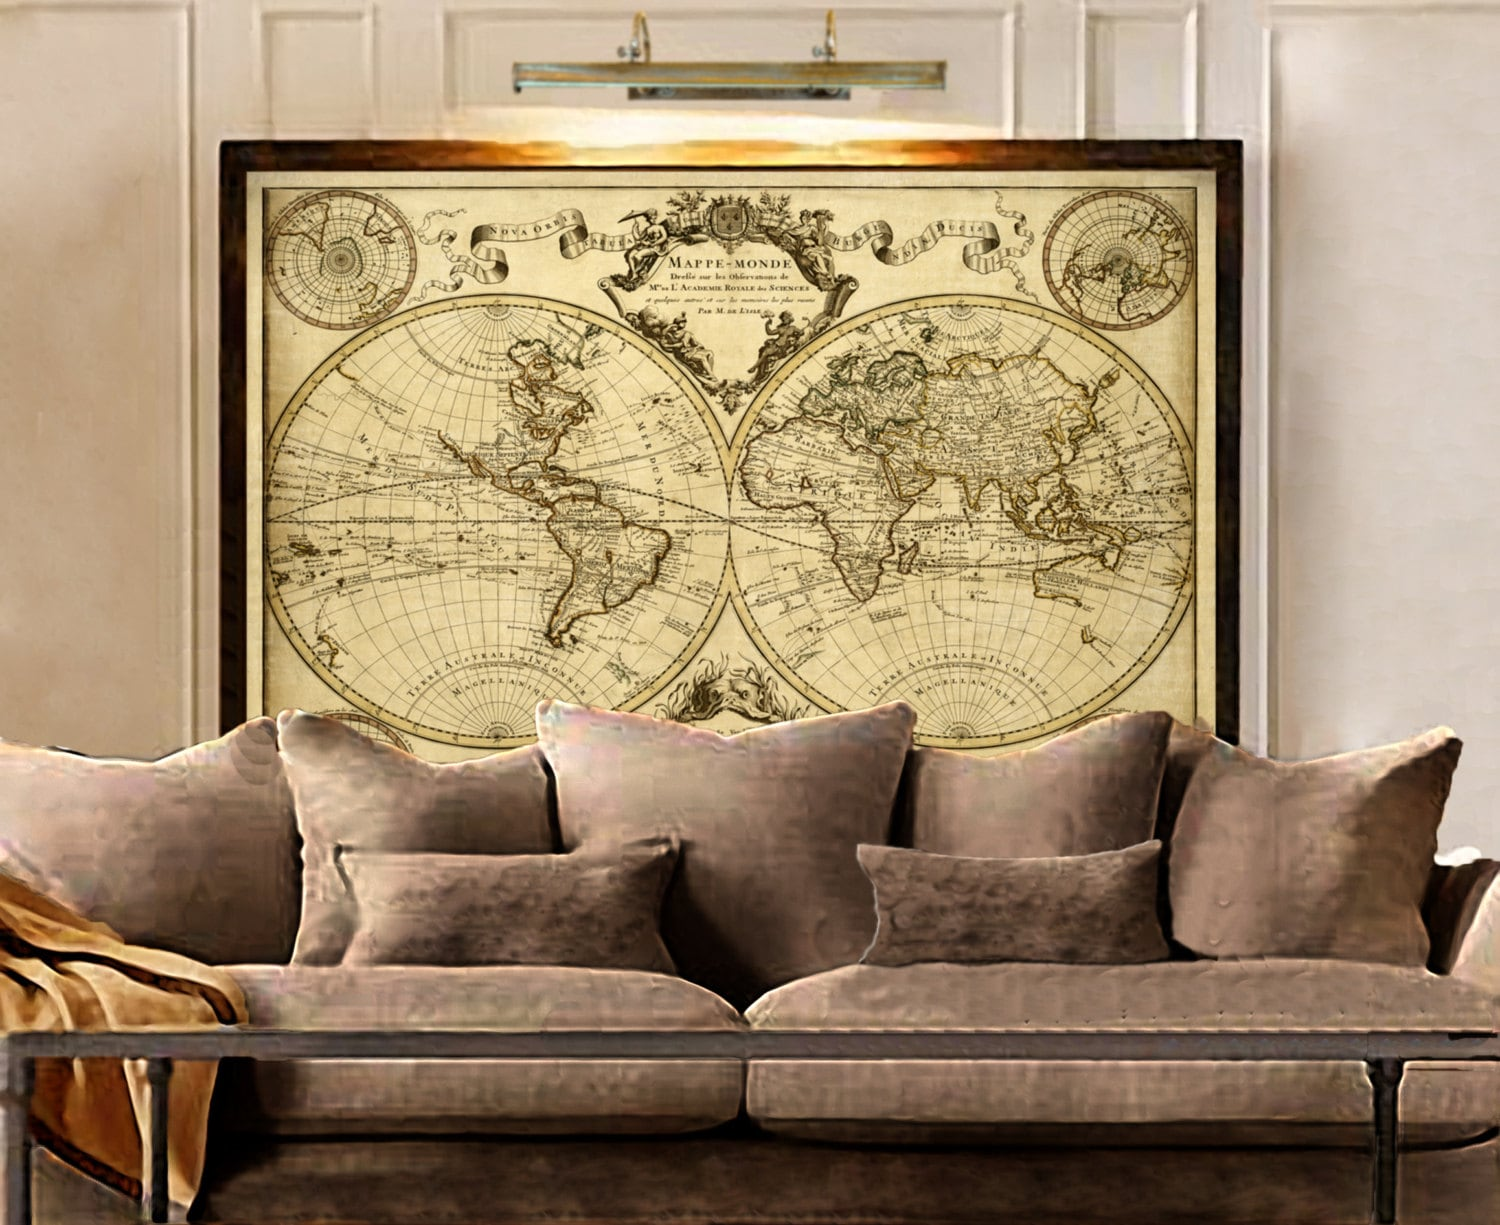 Lisles 1720 old world map historic map antique style zoom gumiabroncs Gallery